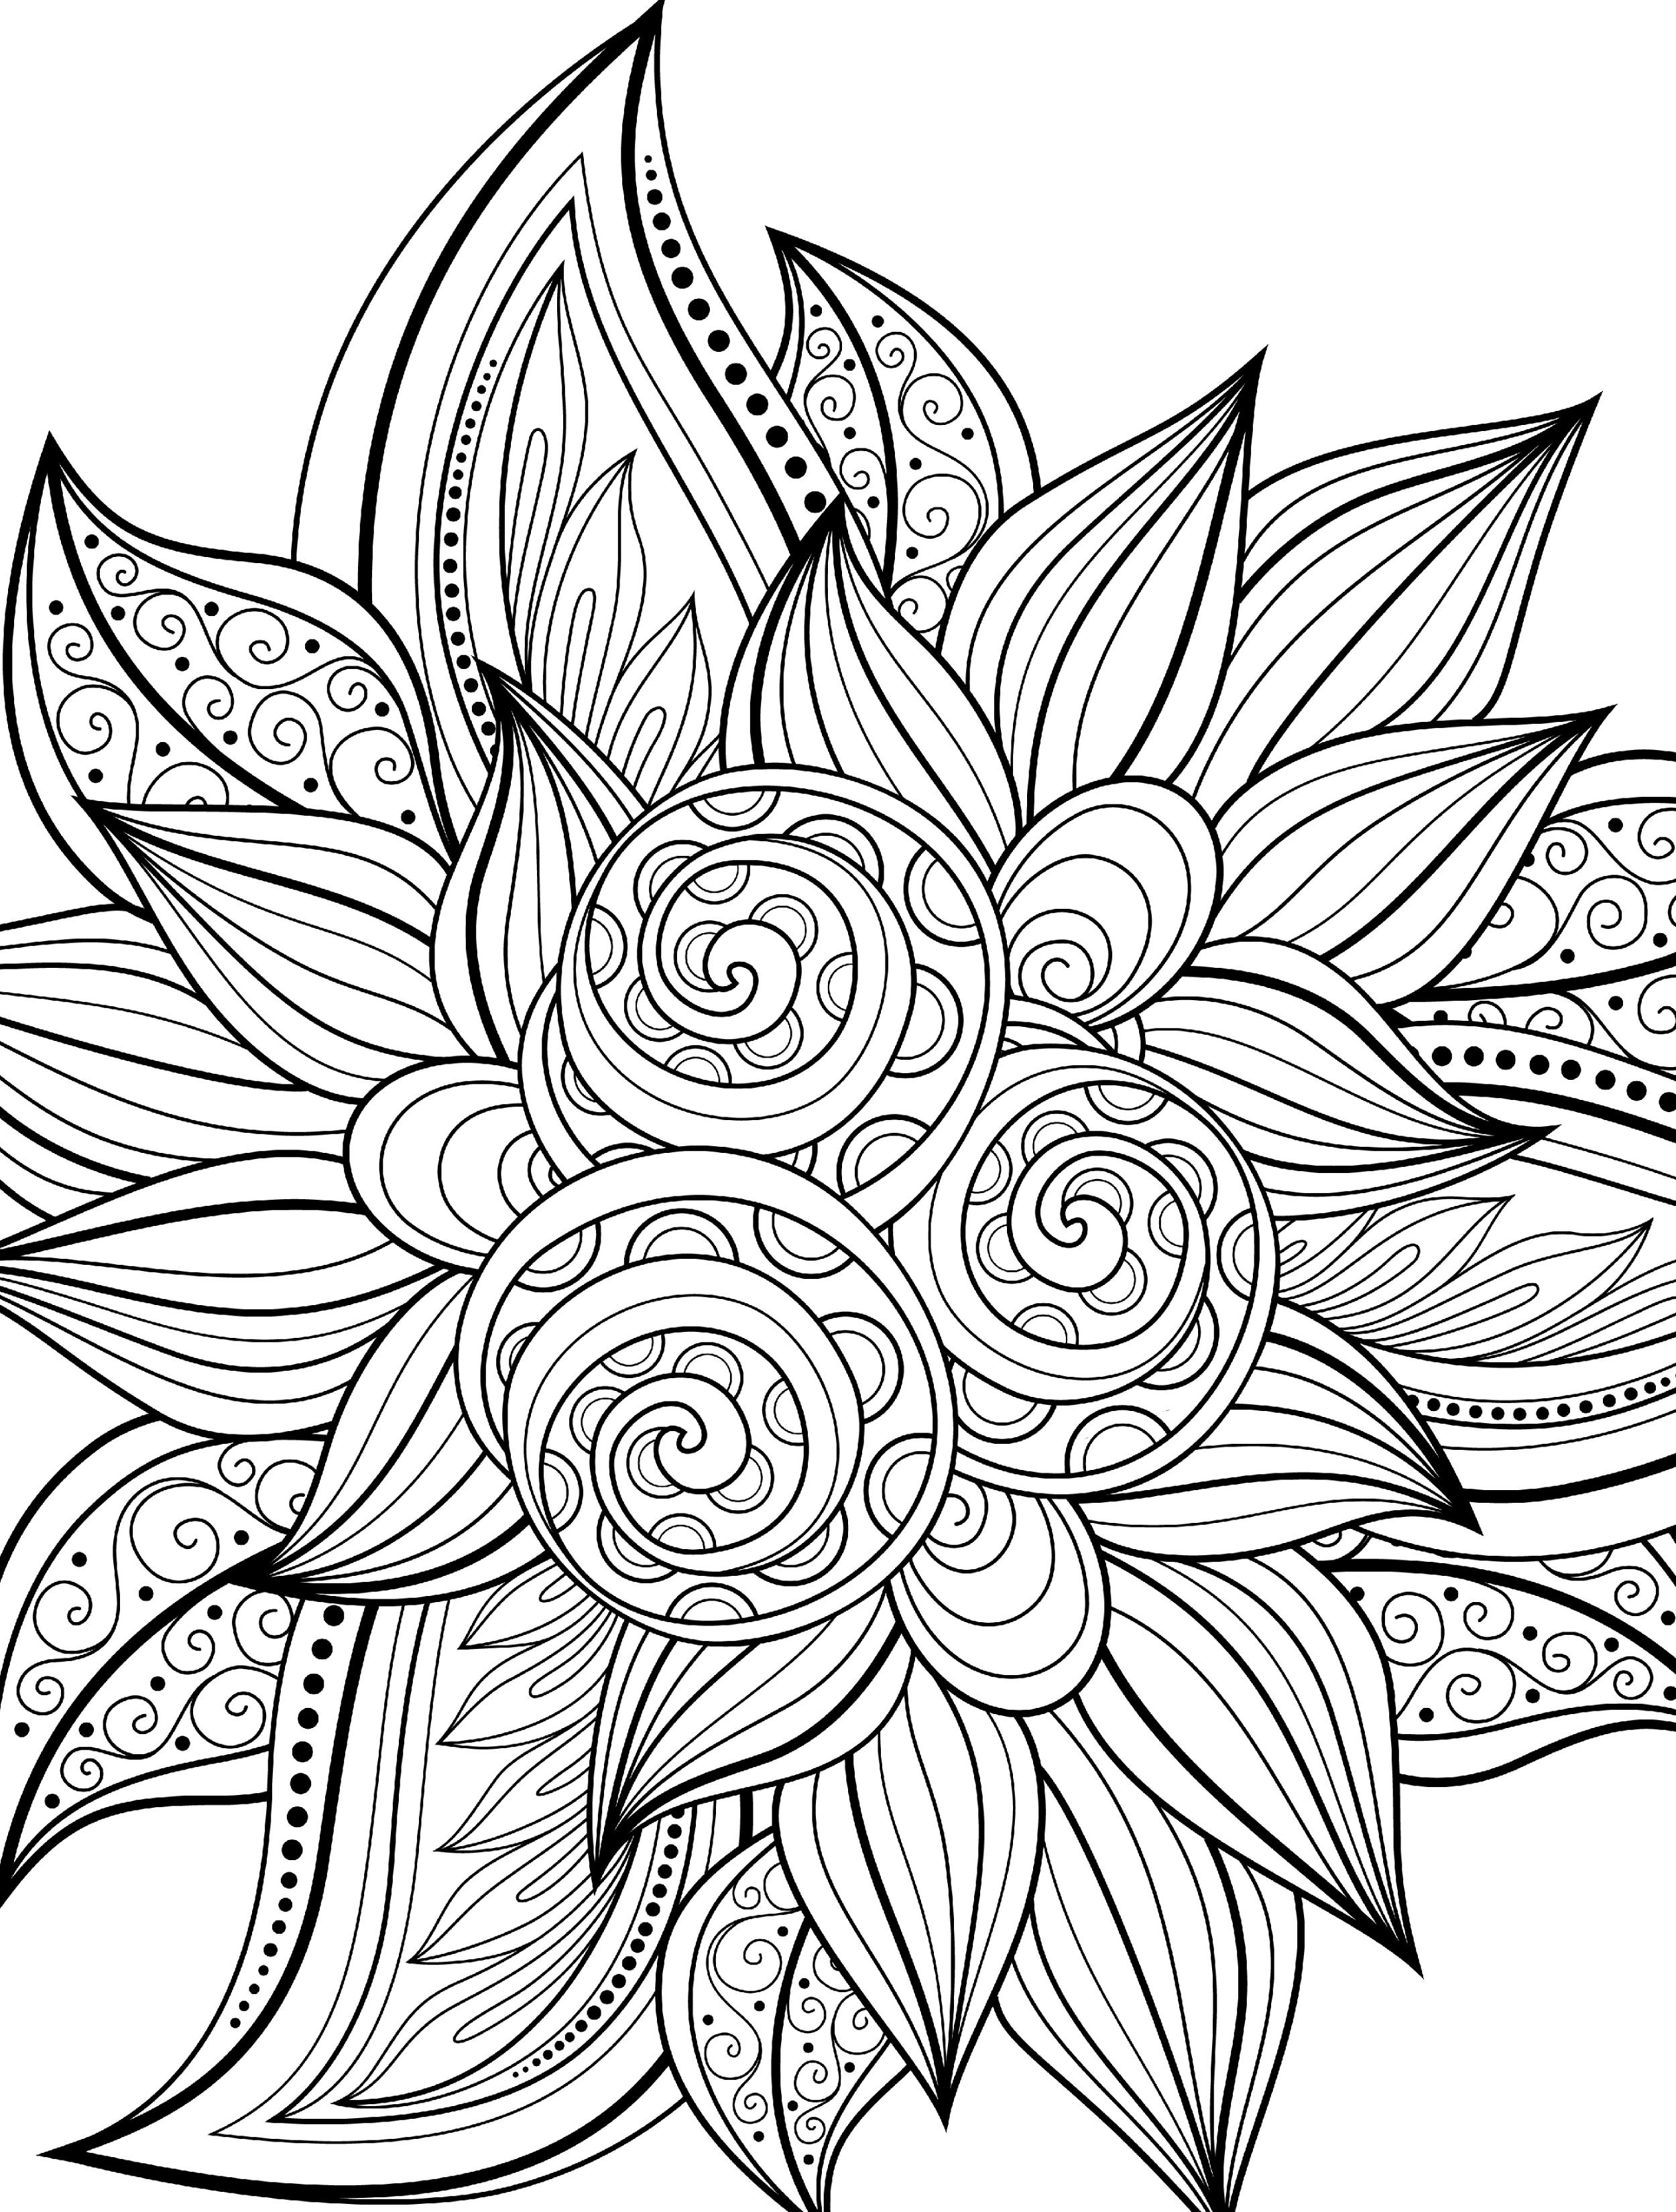 graphic art coloring pages graphic design coloring pages at getcoloringscom free pages graphic coloring art